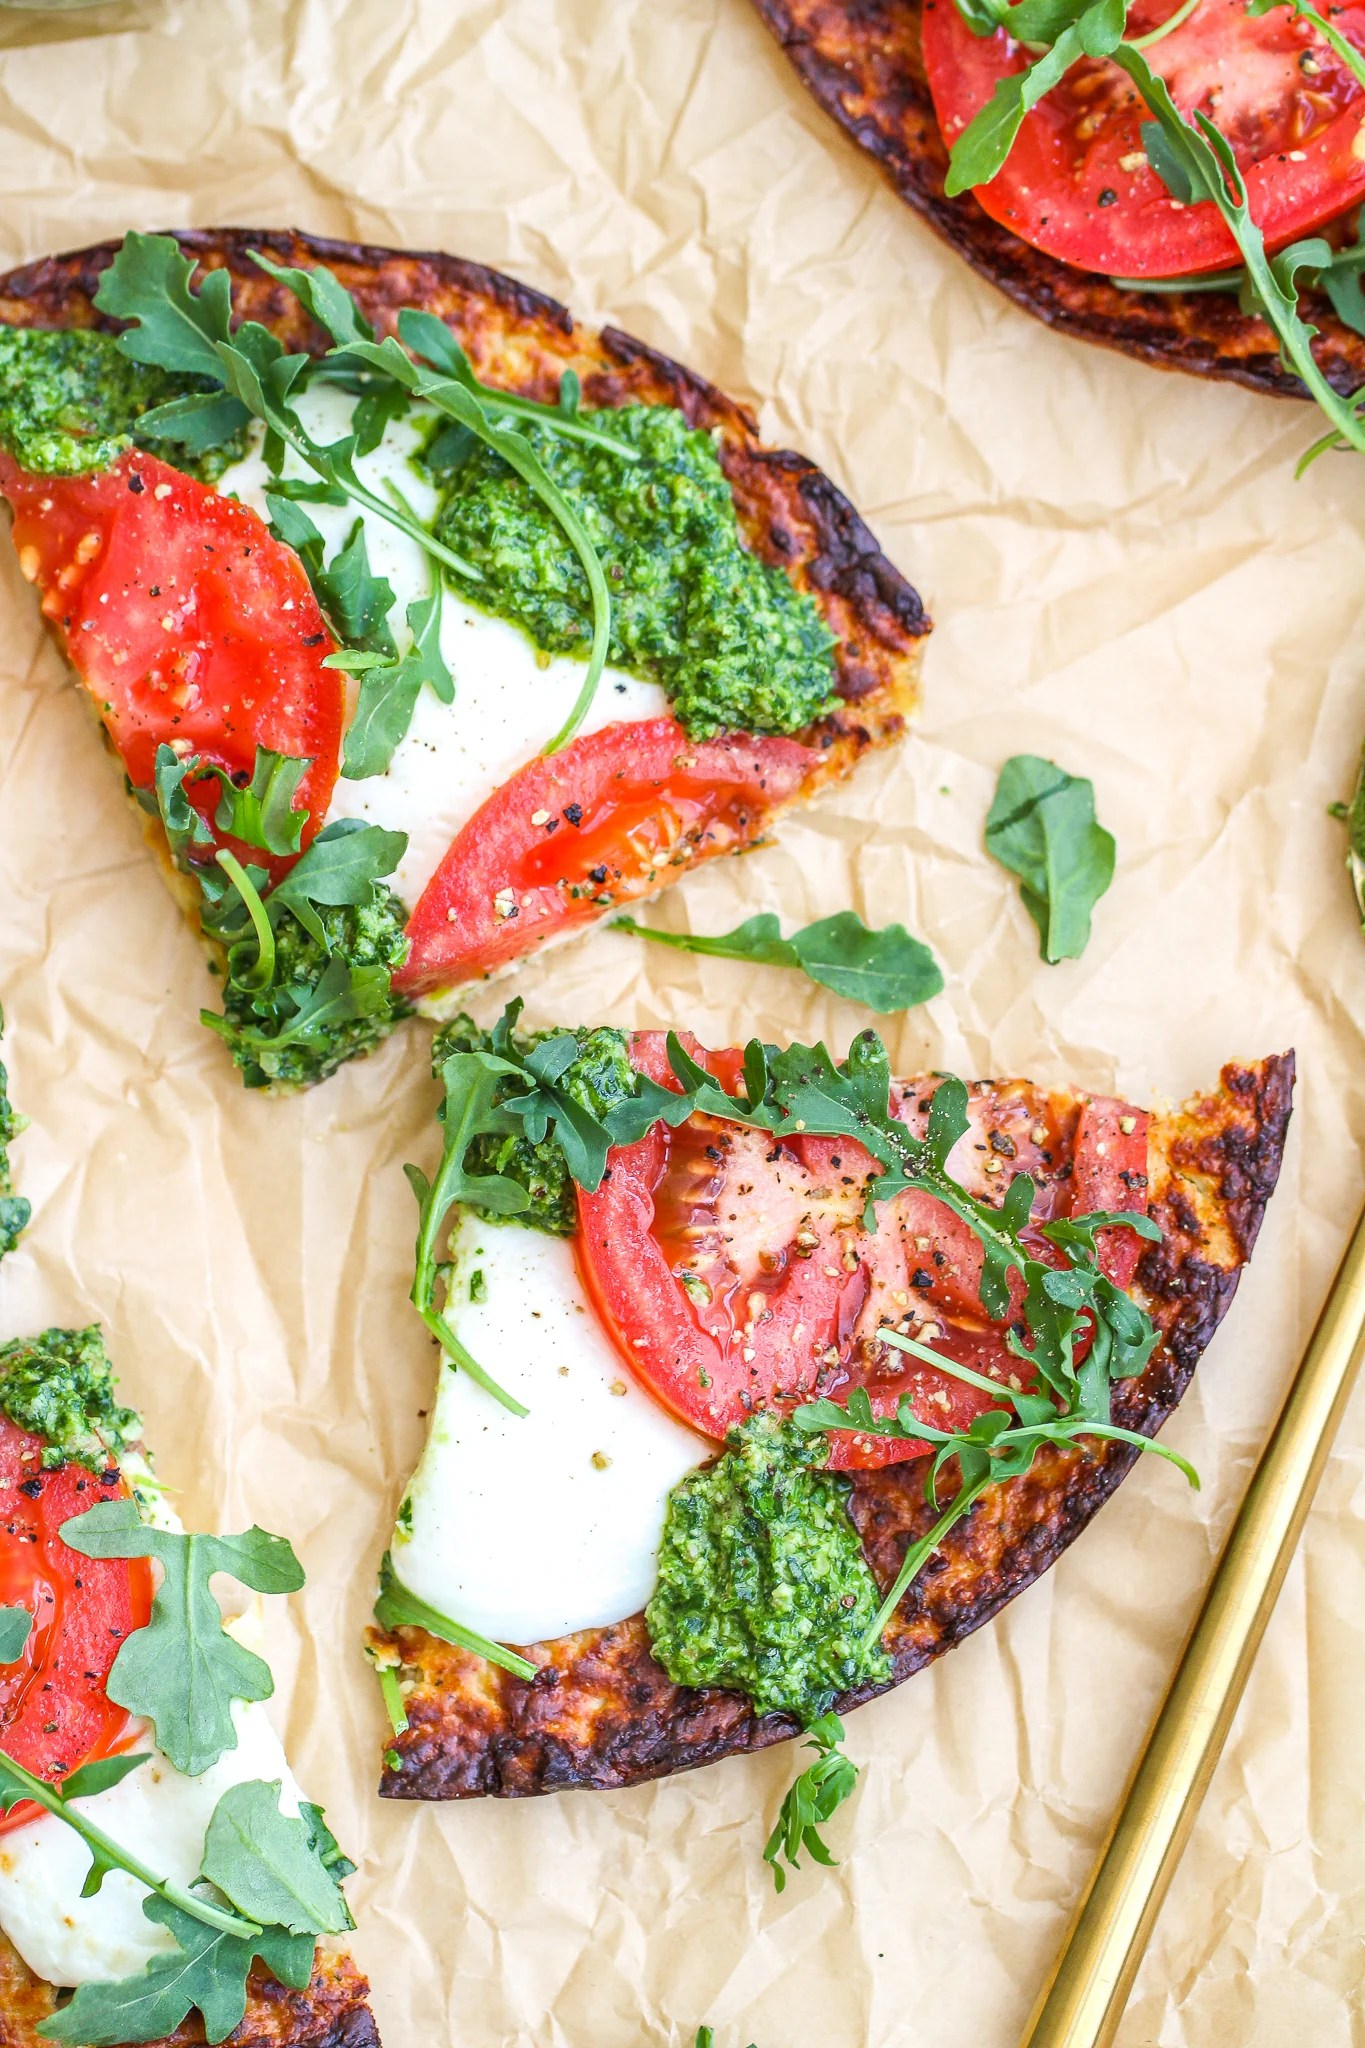 slices of low carb pesto pizza on a piece of parchment paper. The slices are topped with fresh sliced tomato and mozzarella along with fresh arugula and pesto